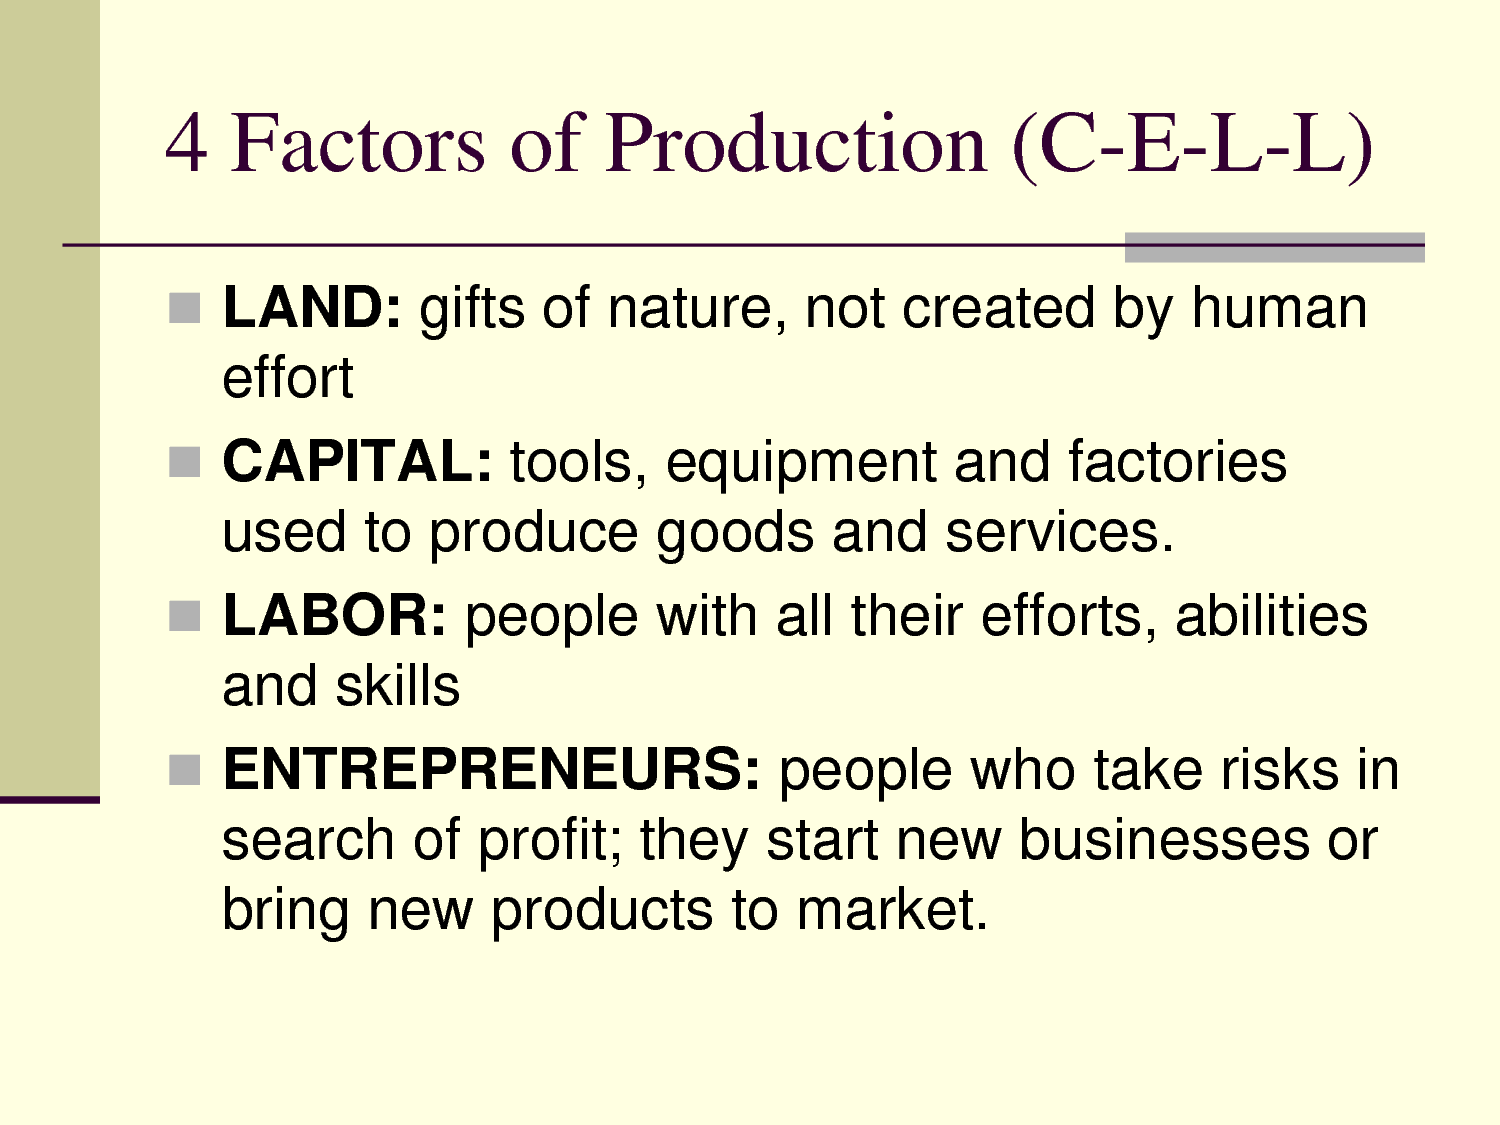 All Of These 4 Factors Helped Increase The Economy Because Using The Land  Helped Produce Crops